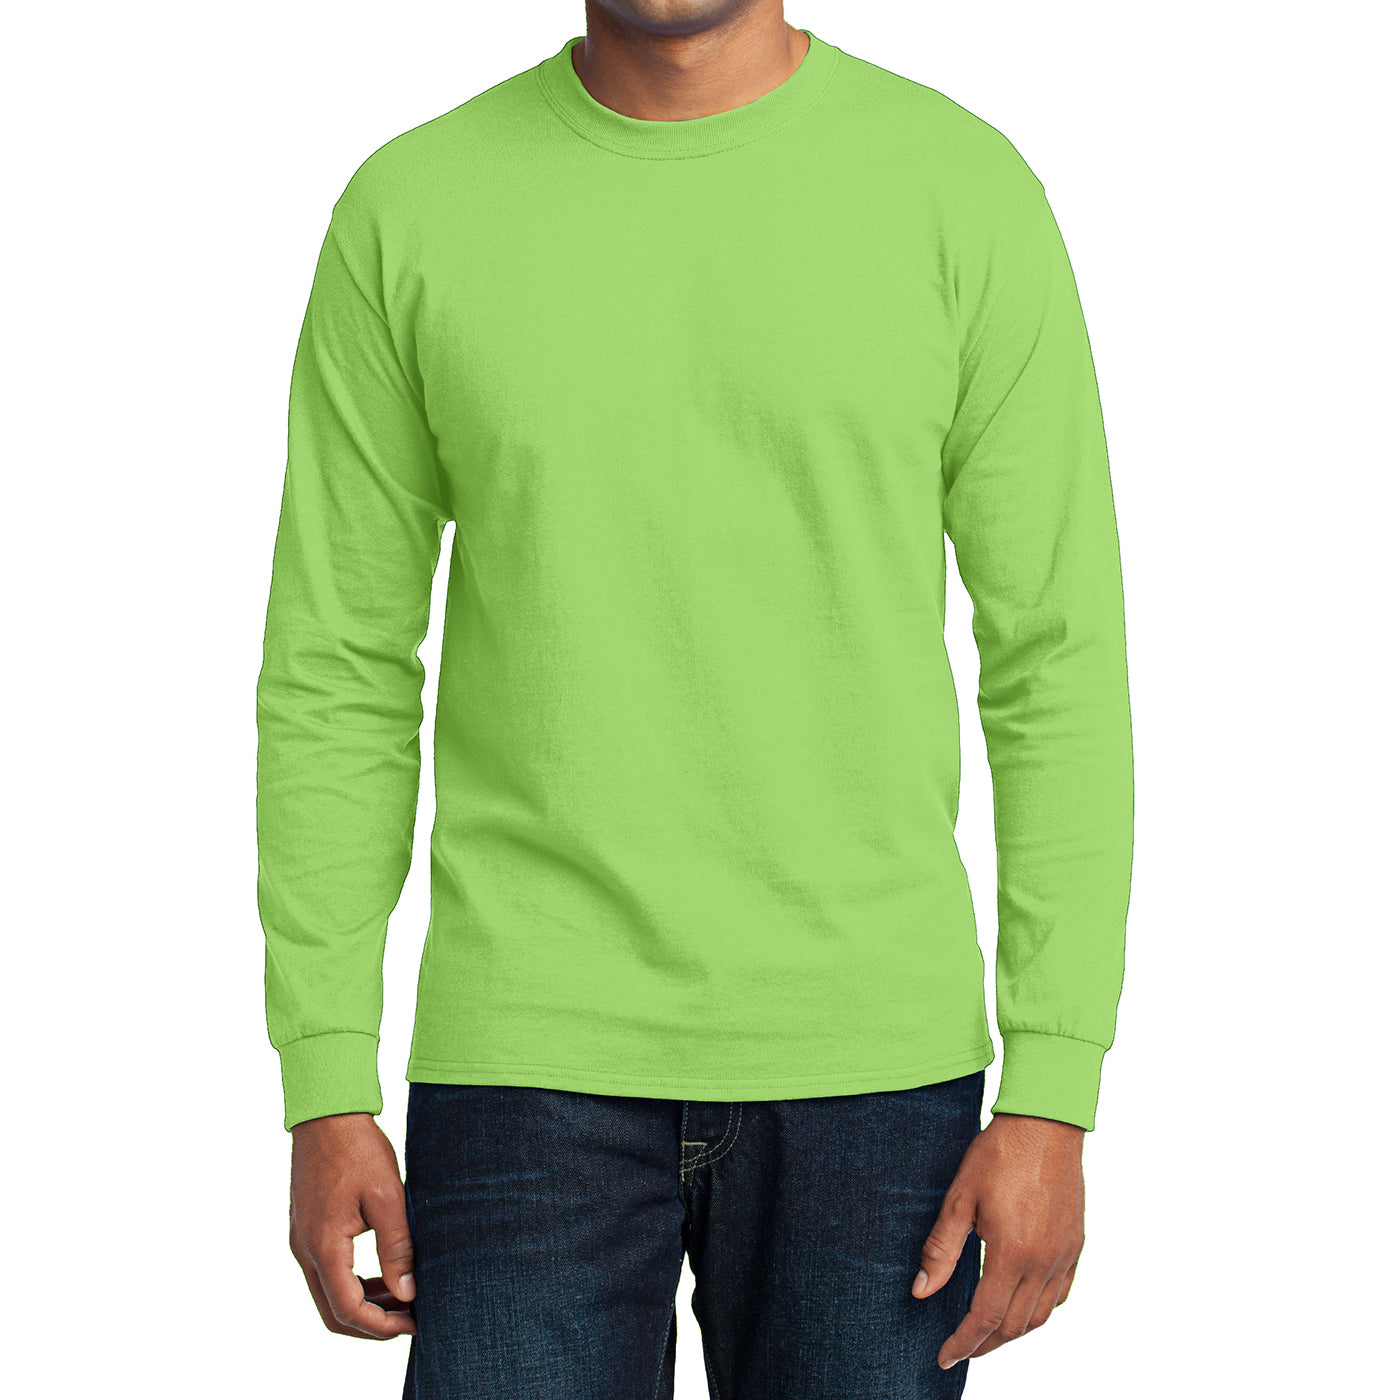 Men's Long Sleeve Core Blend Tee - Lime – Front